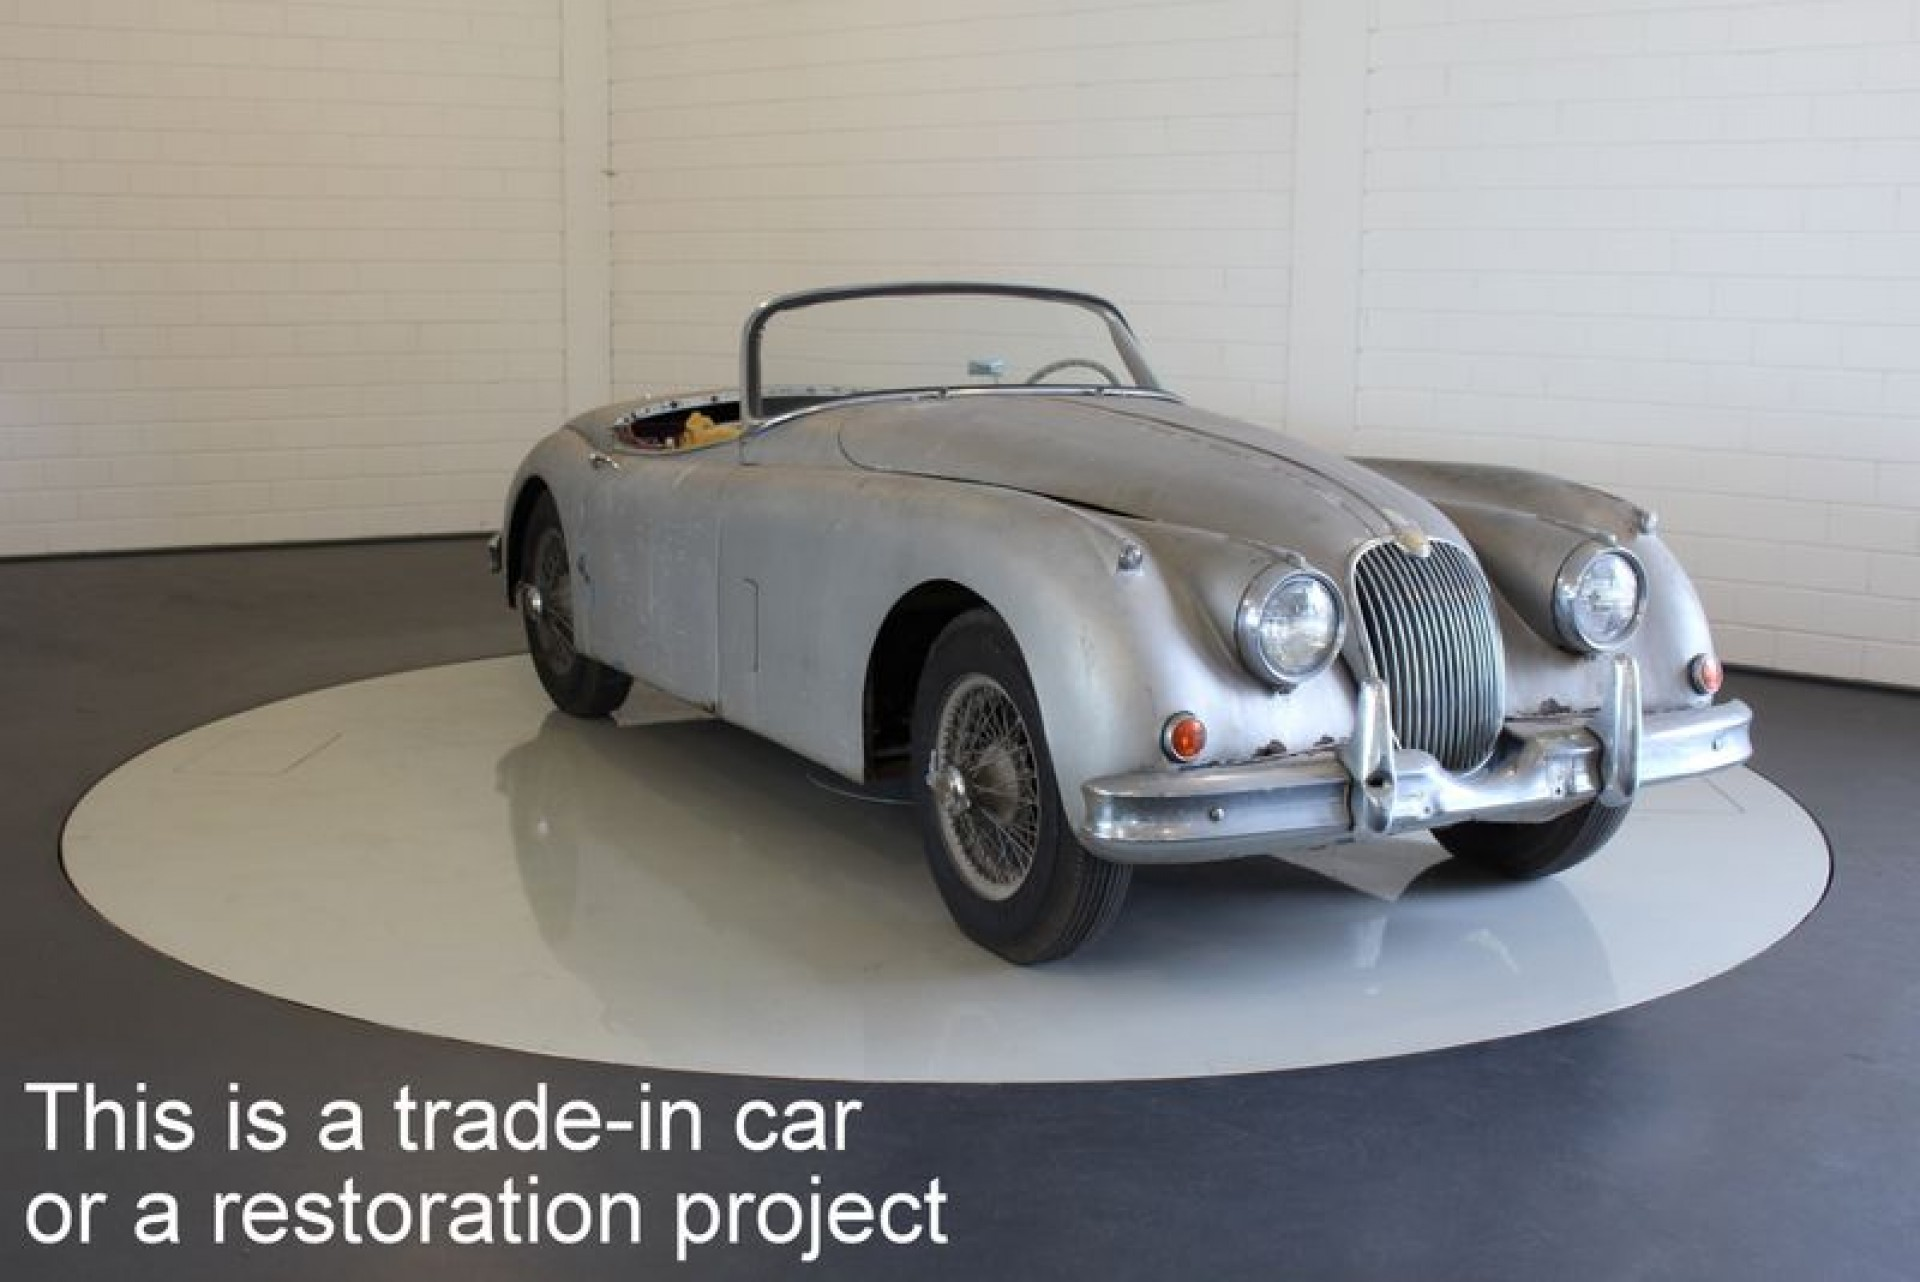 rhd used concourse cars classic beautiful jaguar glasgow investment pistonheads sale in condition classifieds for